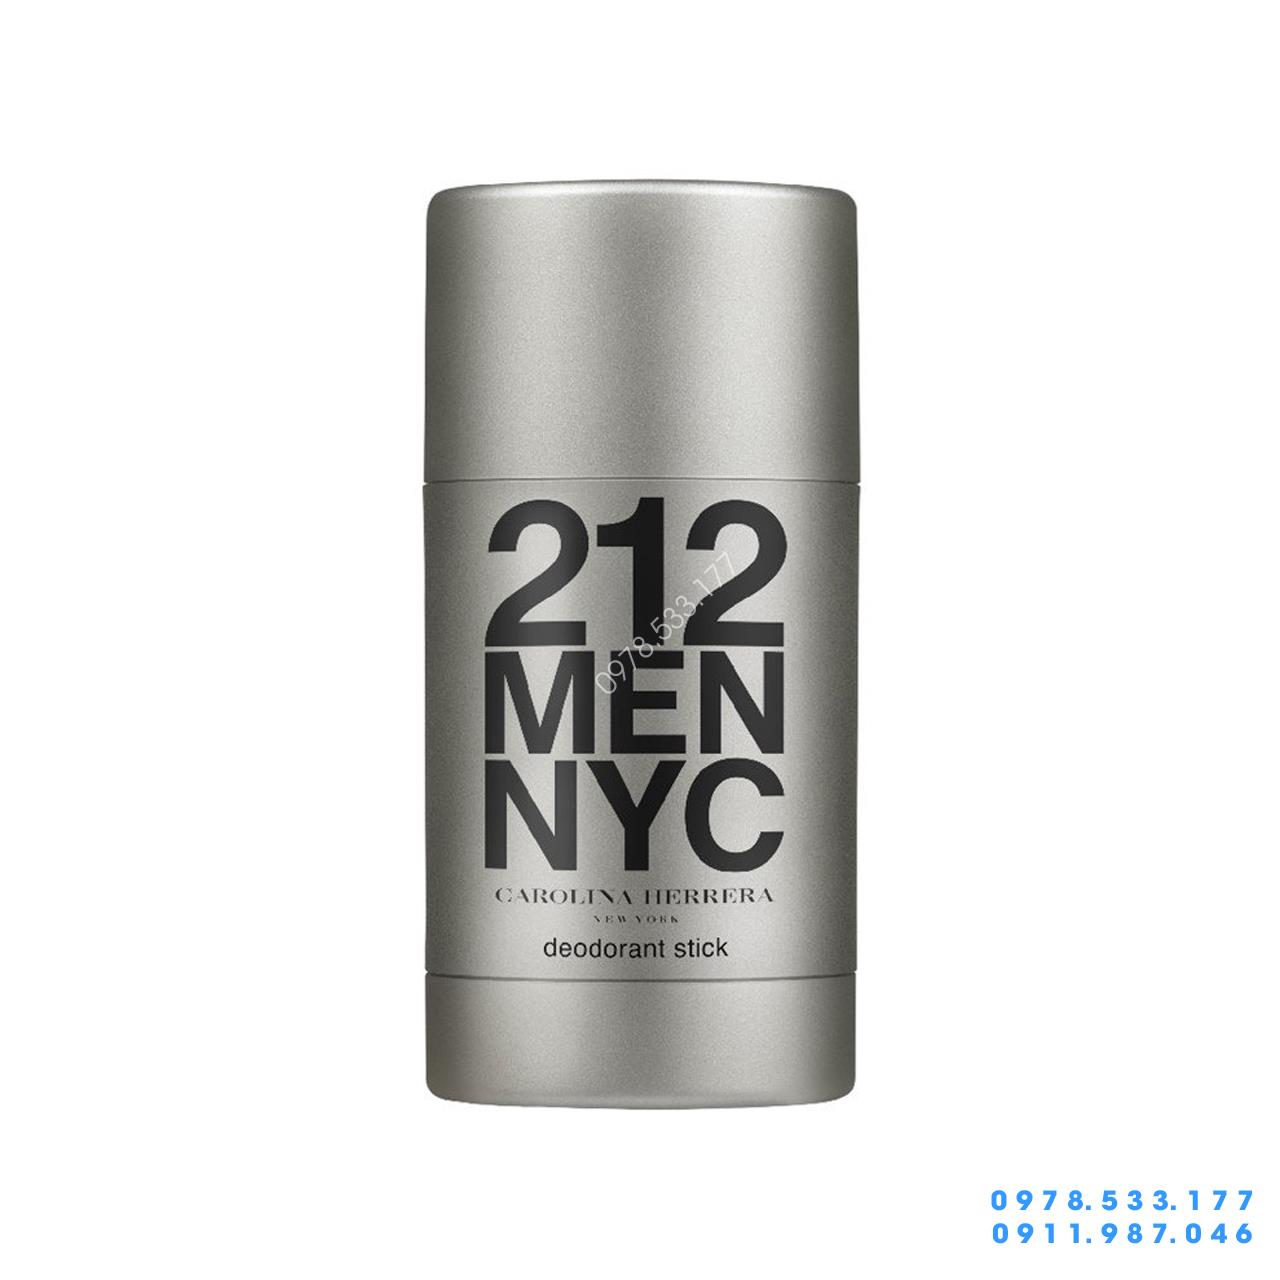 lan-khu-mui-nam-212-men-nyc-carolina-herrera-deodorant-stick-75ml-chinh-hang-pn100027